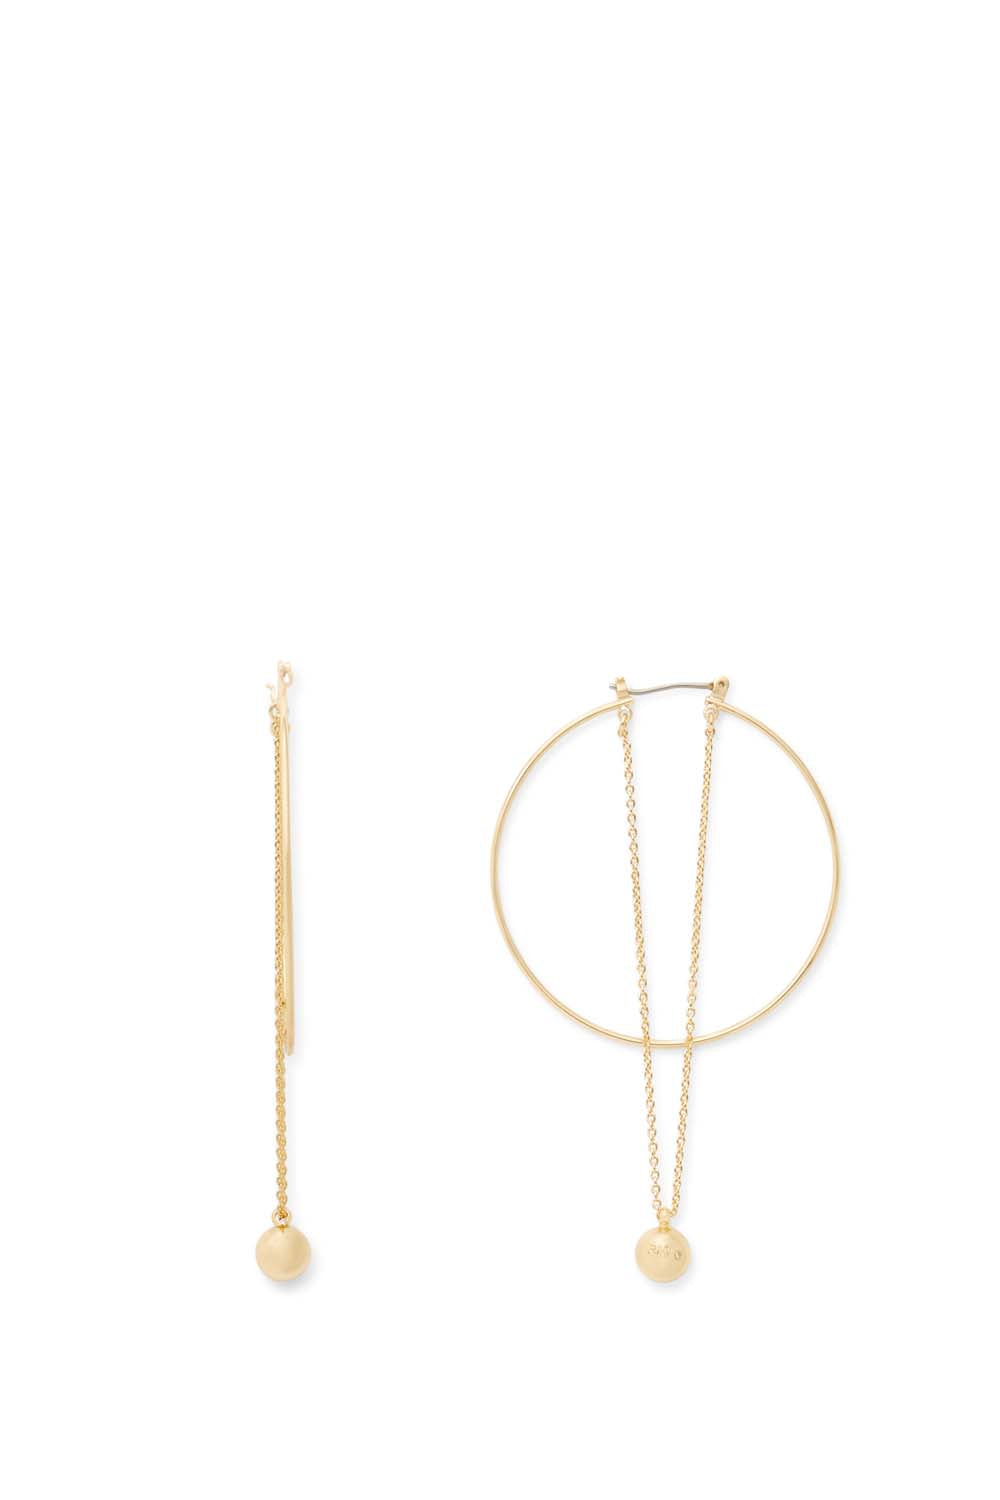 Ball and Chain Hoops